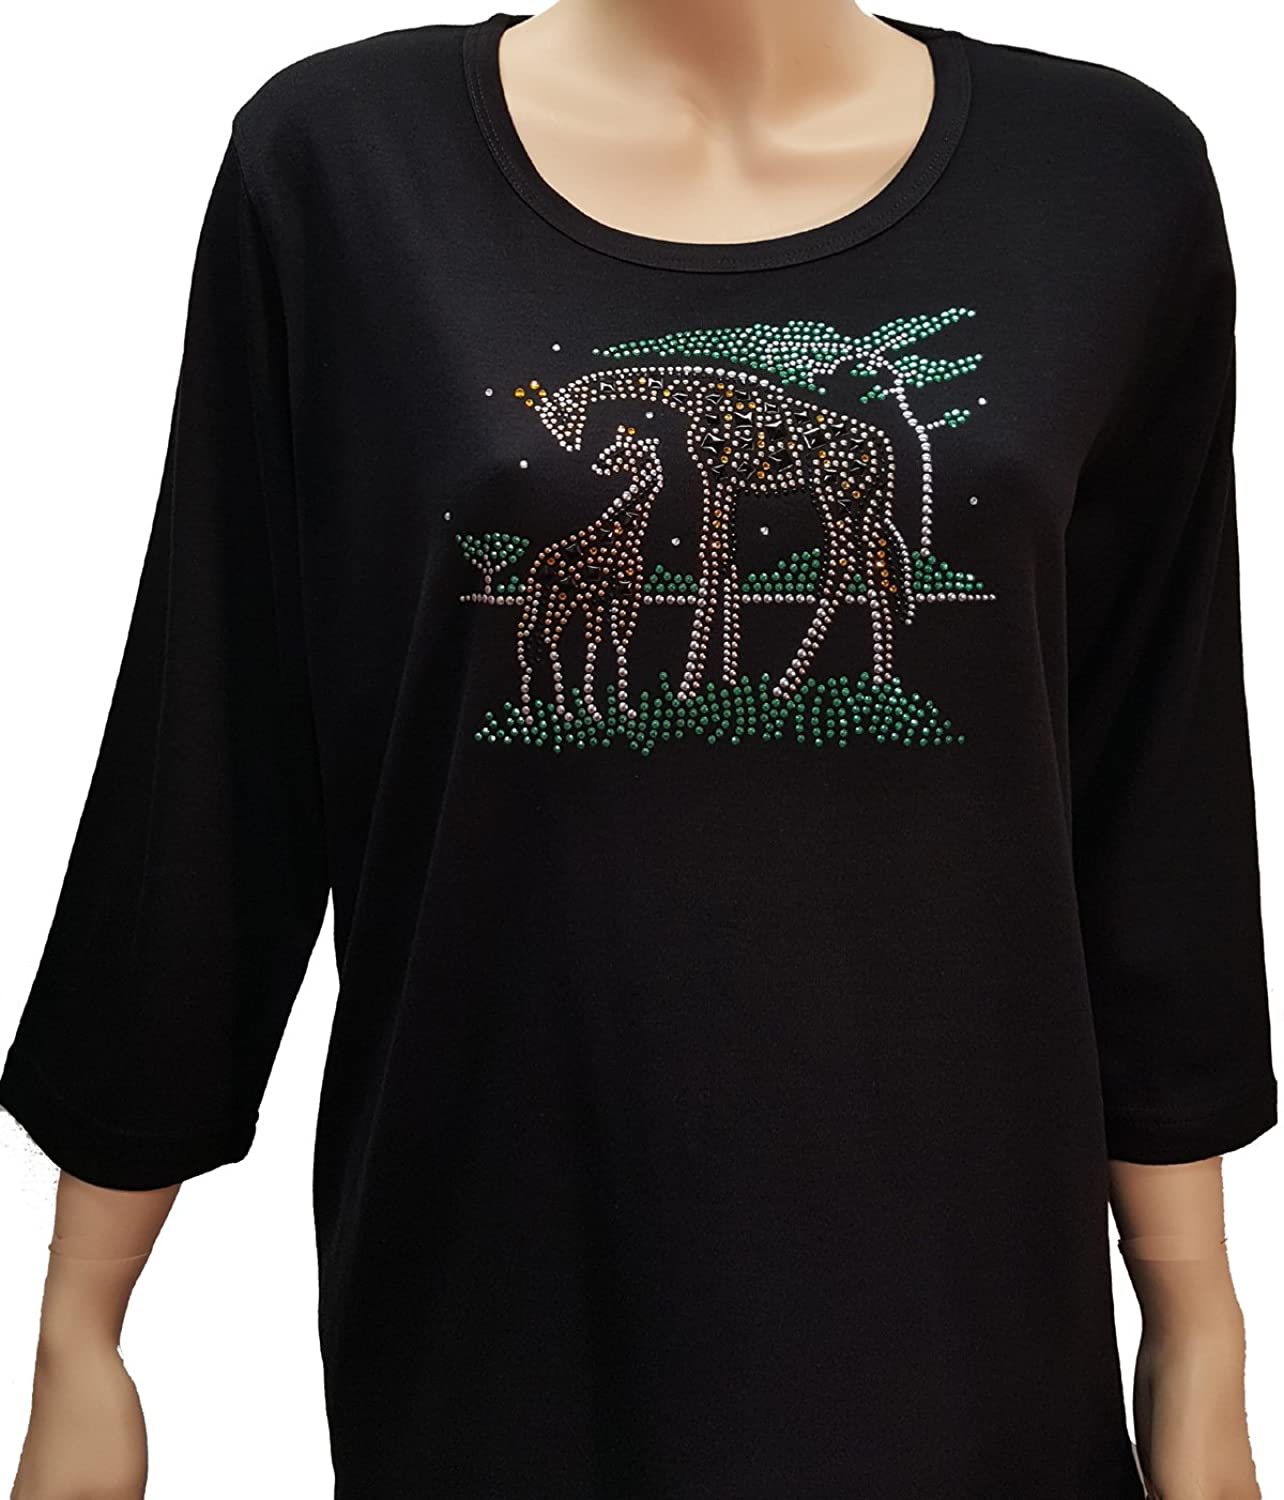 Giraffe Bling Rhinestone Black Shirt with Scoop Neck